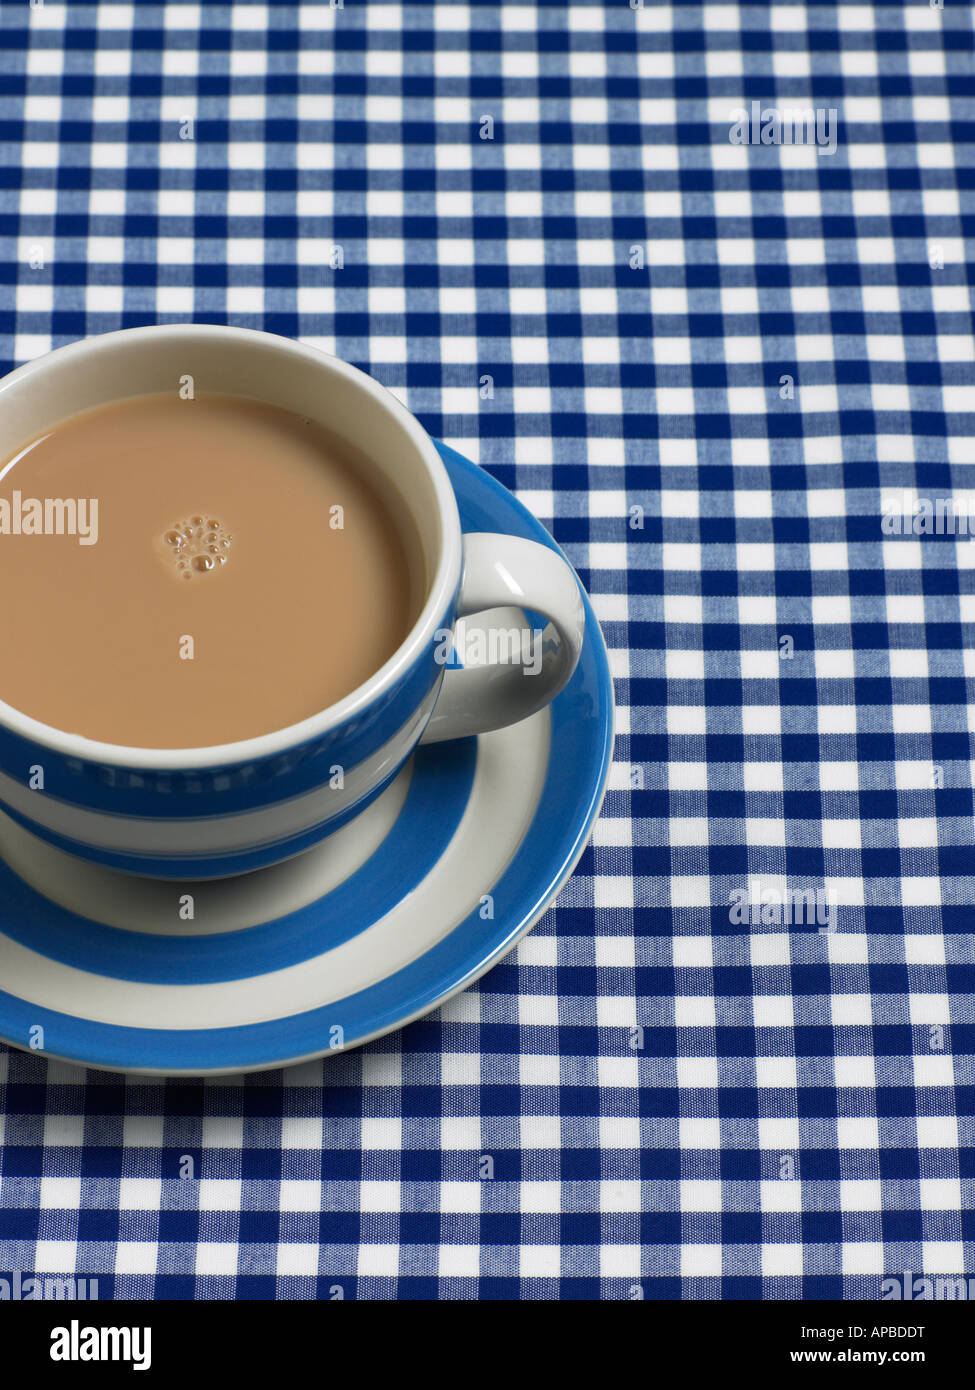 cornish blue stripped tea cup on gingham - Stock Image